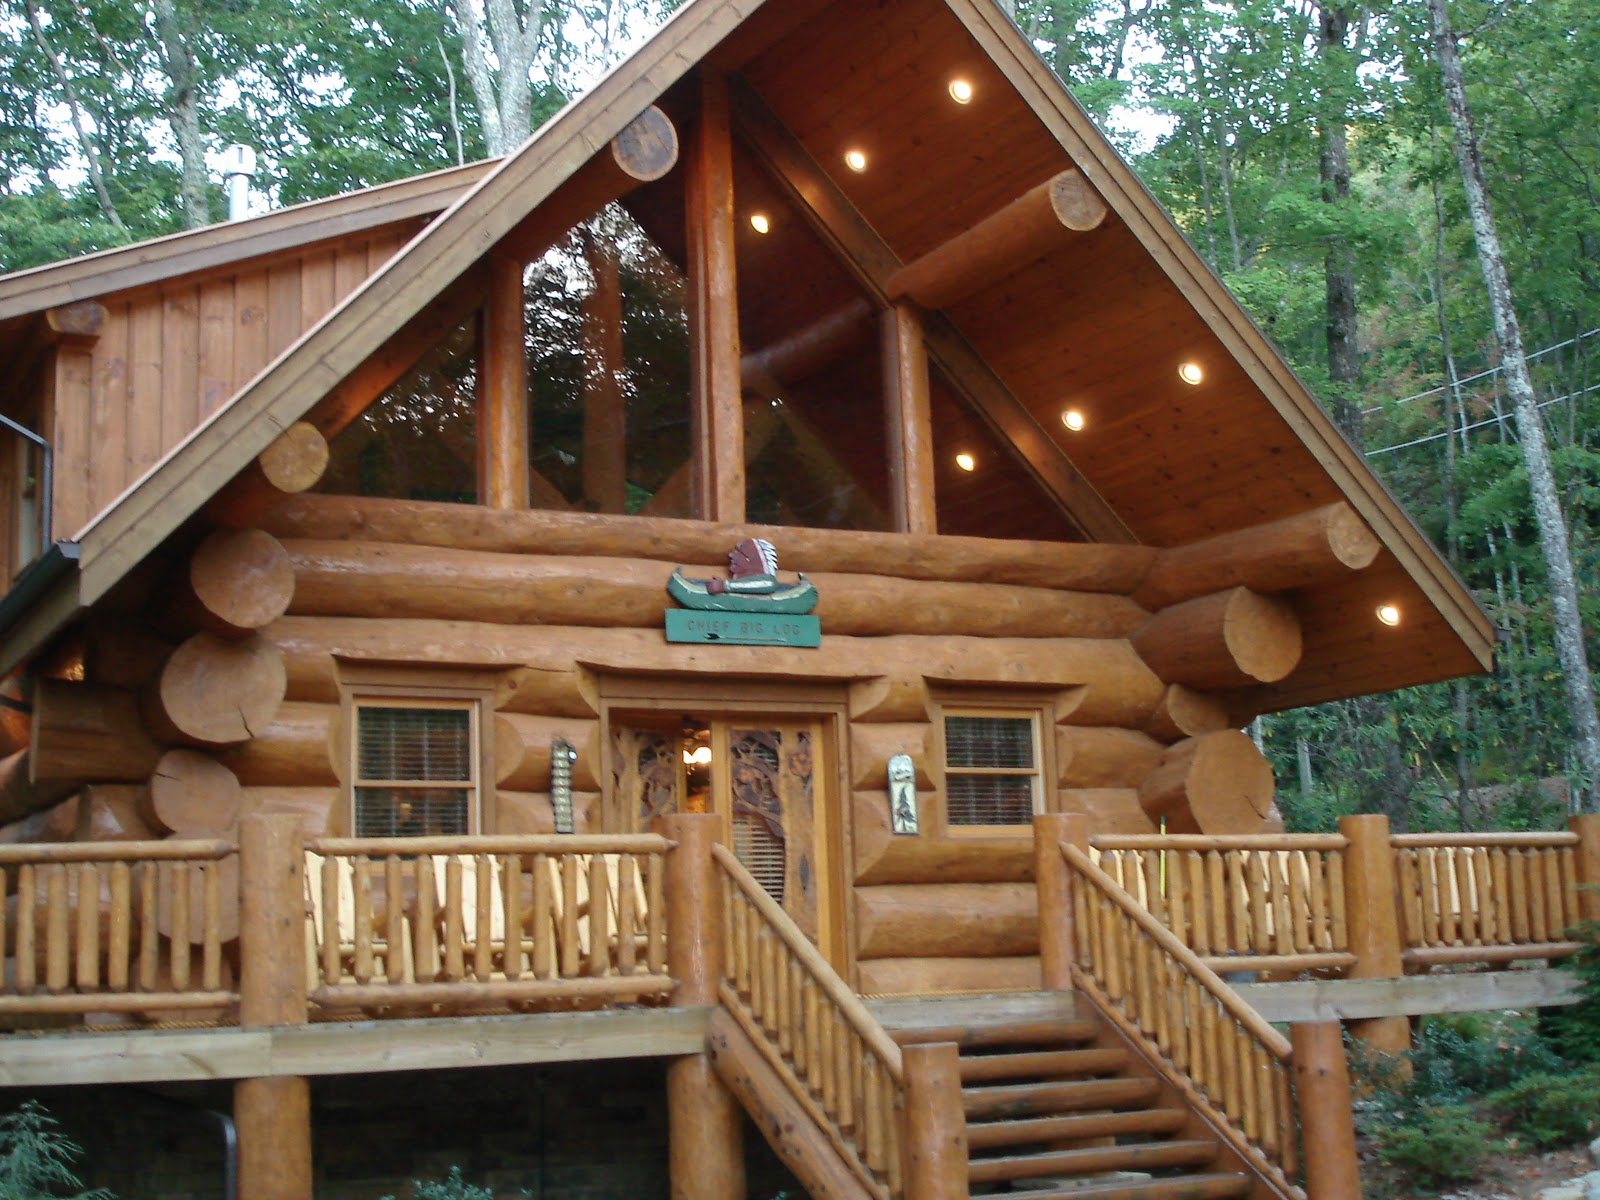 in pigeon tn forge honeymoon interior s pet near cabin cabins cheap friendly rentals dollywood